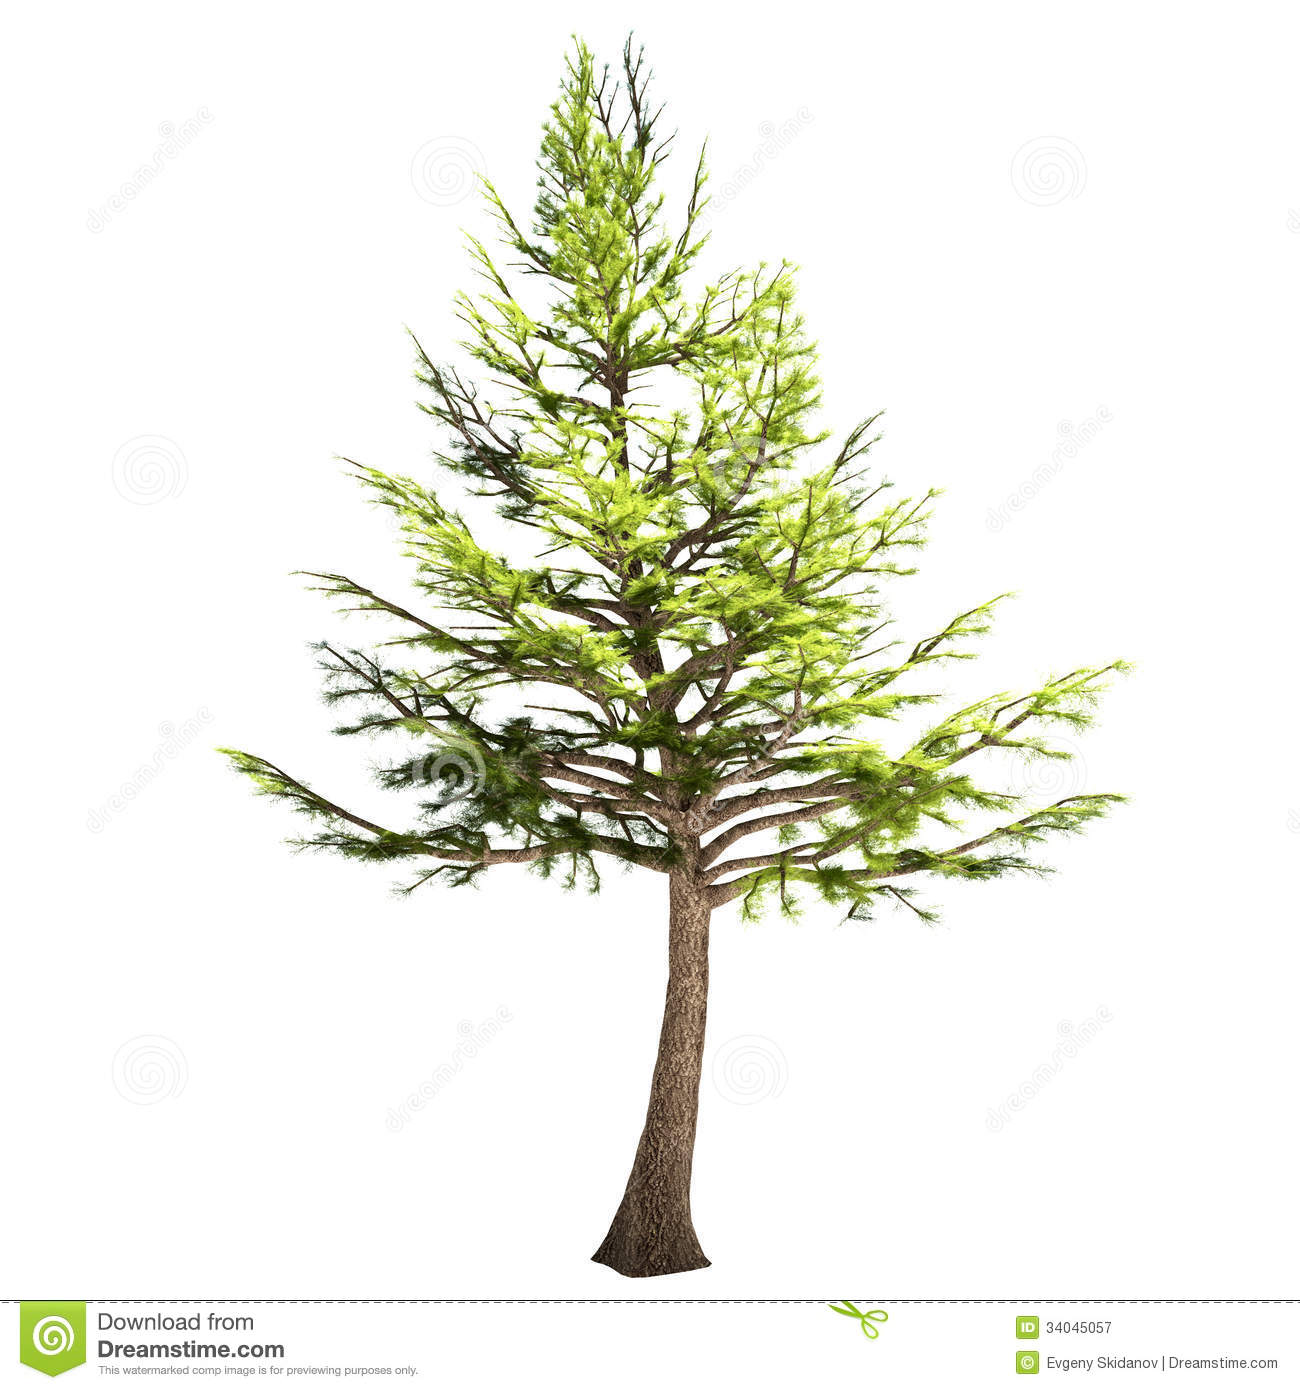 Pictures of cedar trees - Lebanon Cedar Tree Isolated Royalty Free Stock Photography